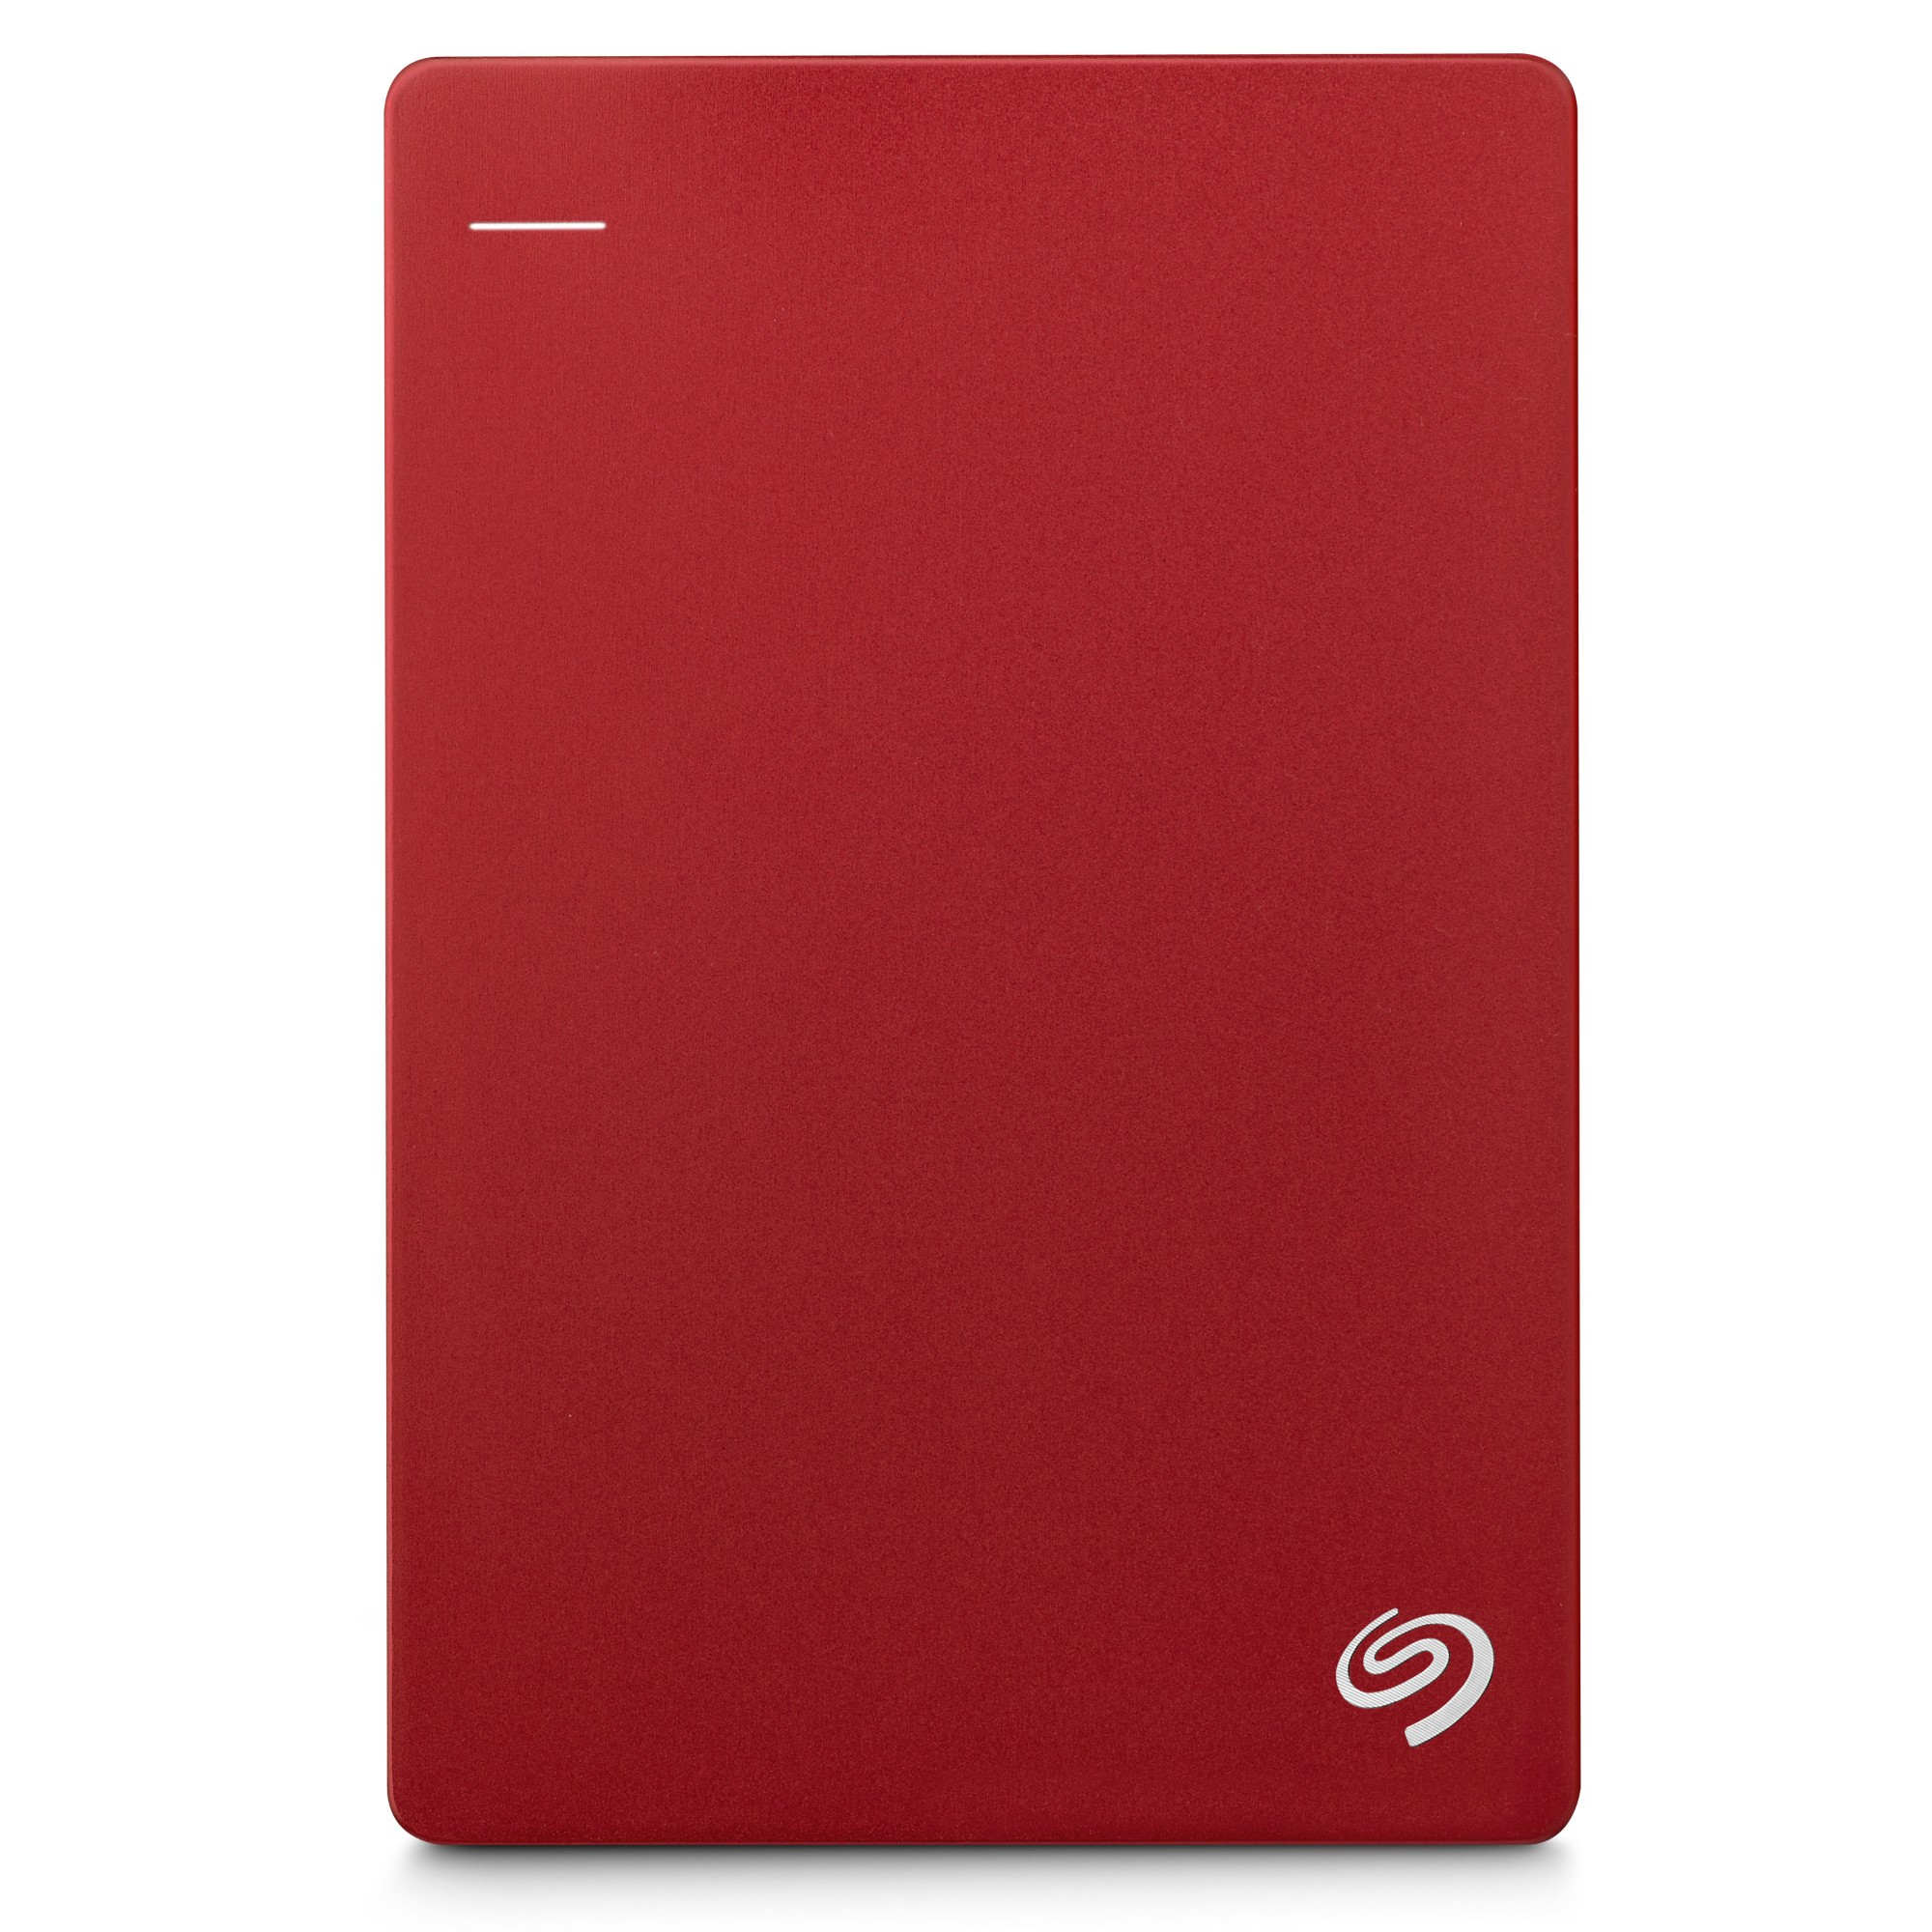 Seagate Backup Plus Slim 1000GB Red external hard drive